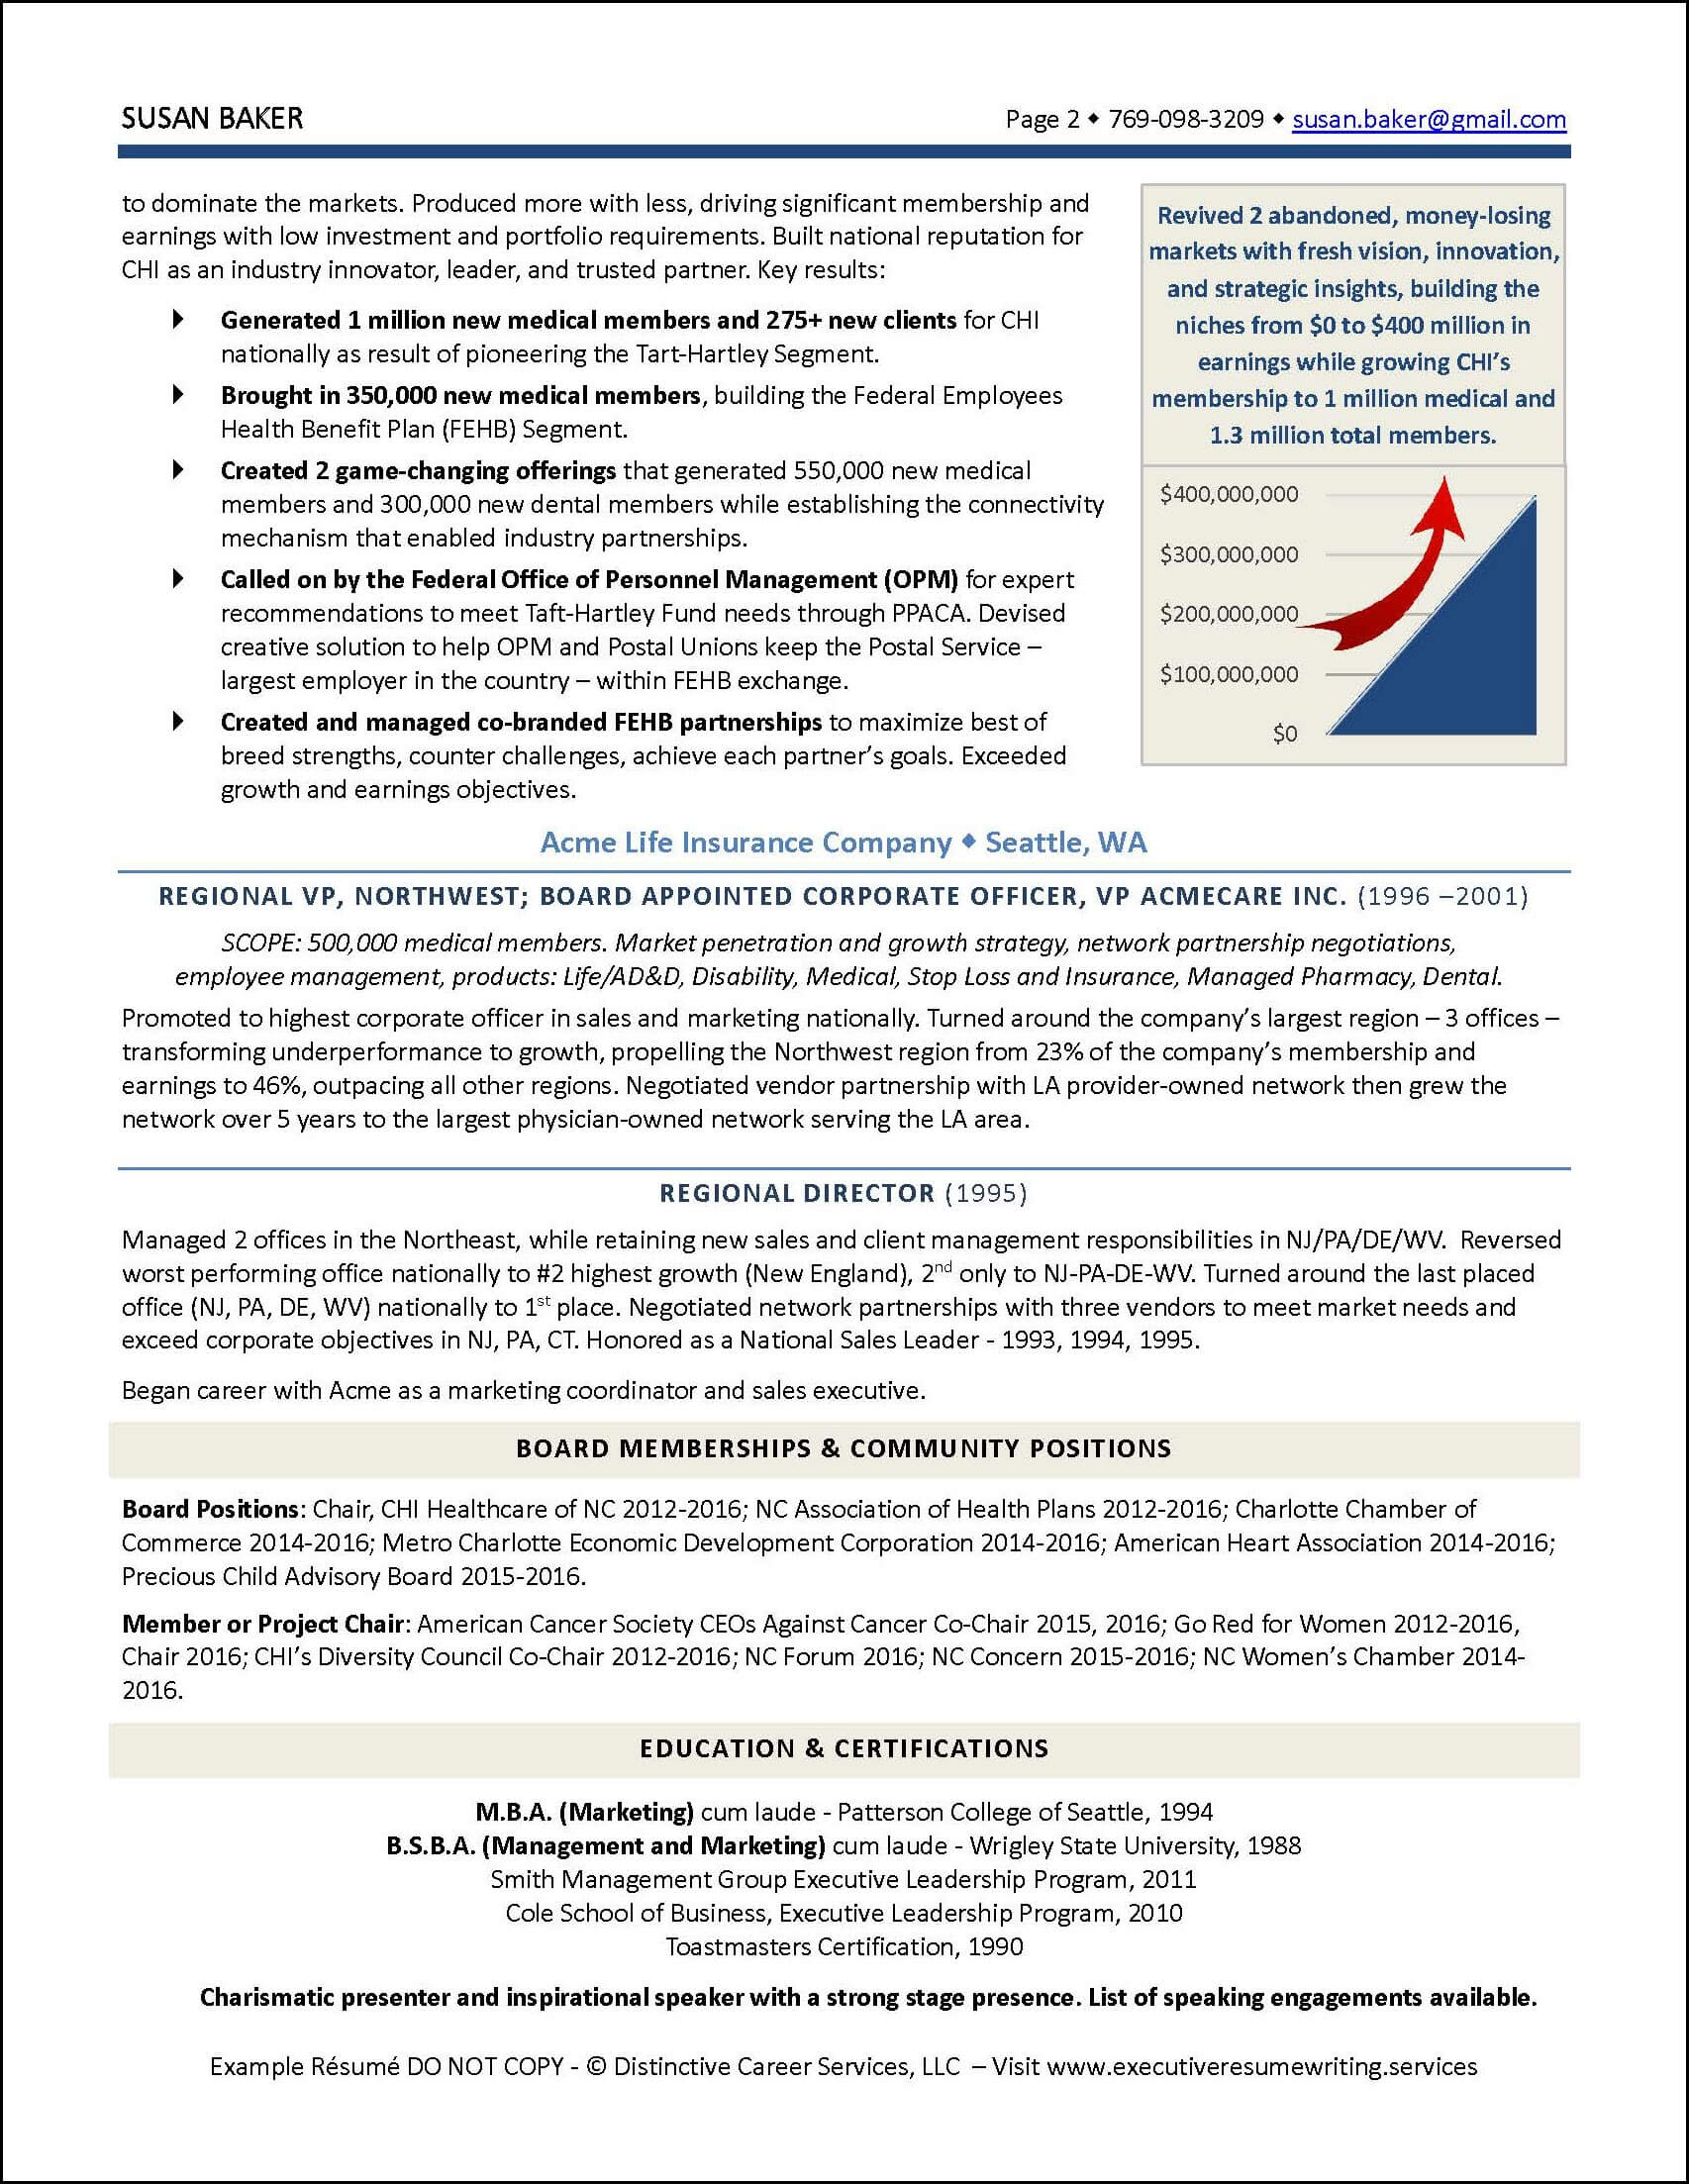 Example CEO-President-GM Executive Resume pg 2